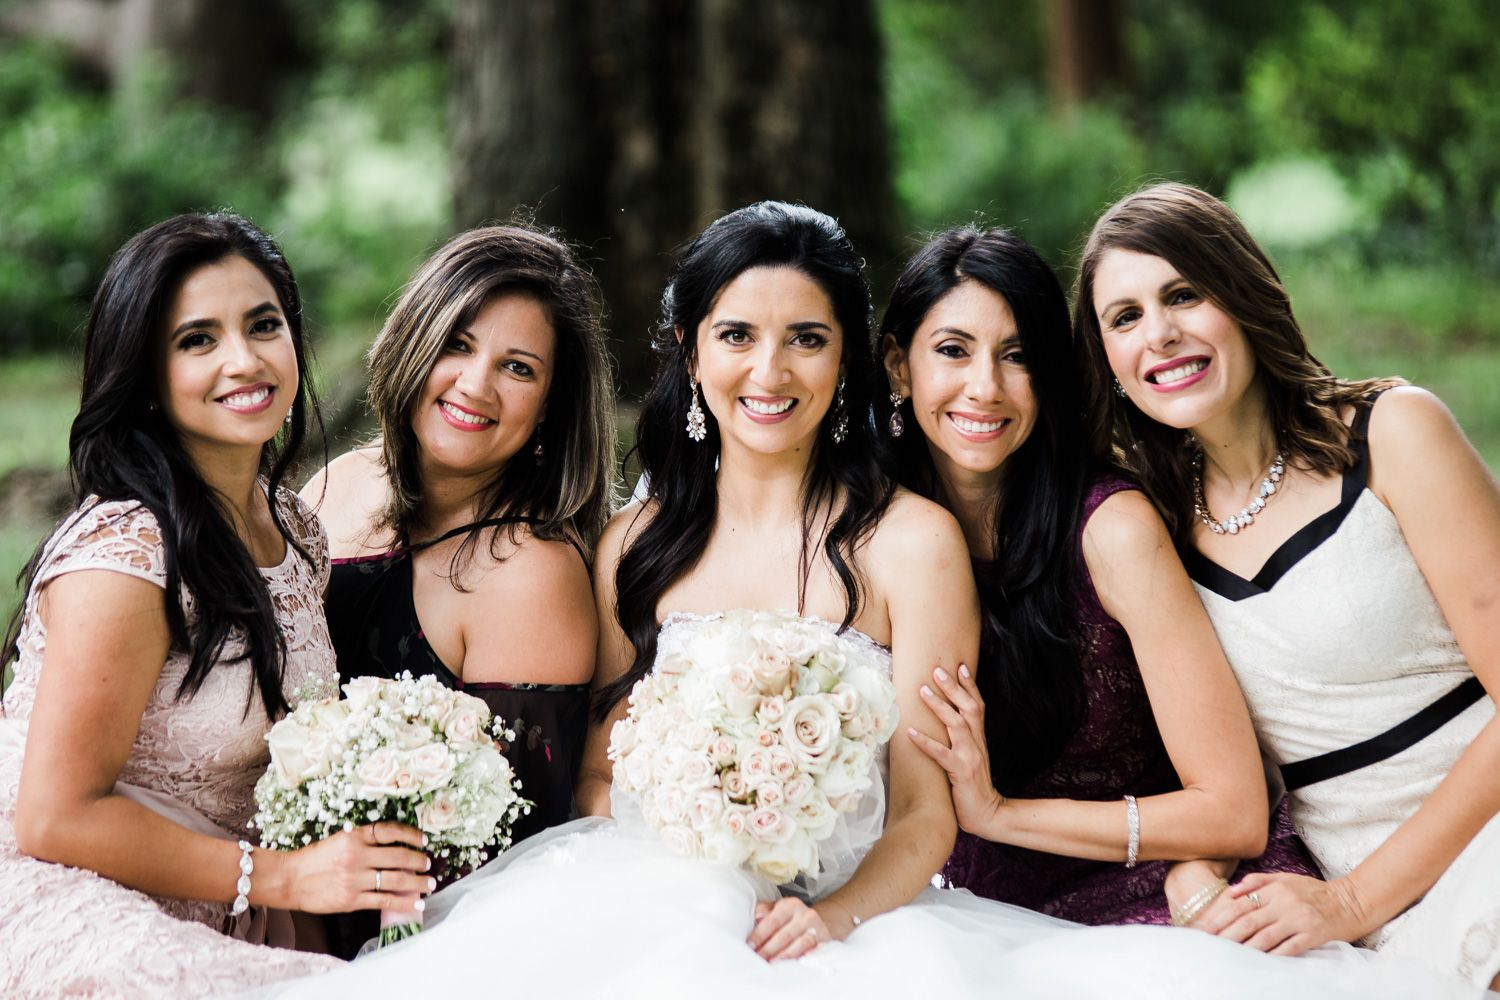 Group photograph of bride, bridesmaids and best friends